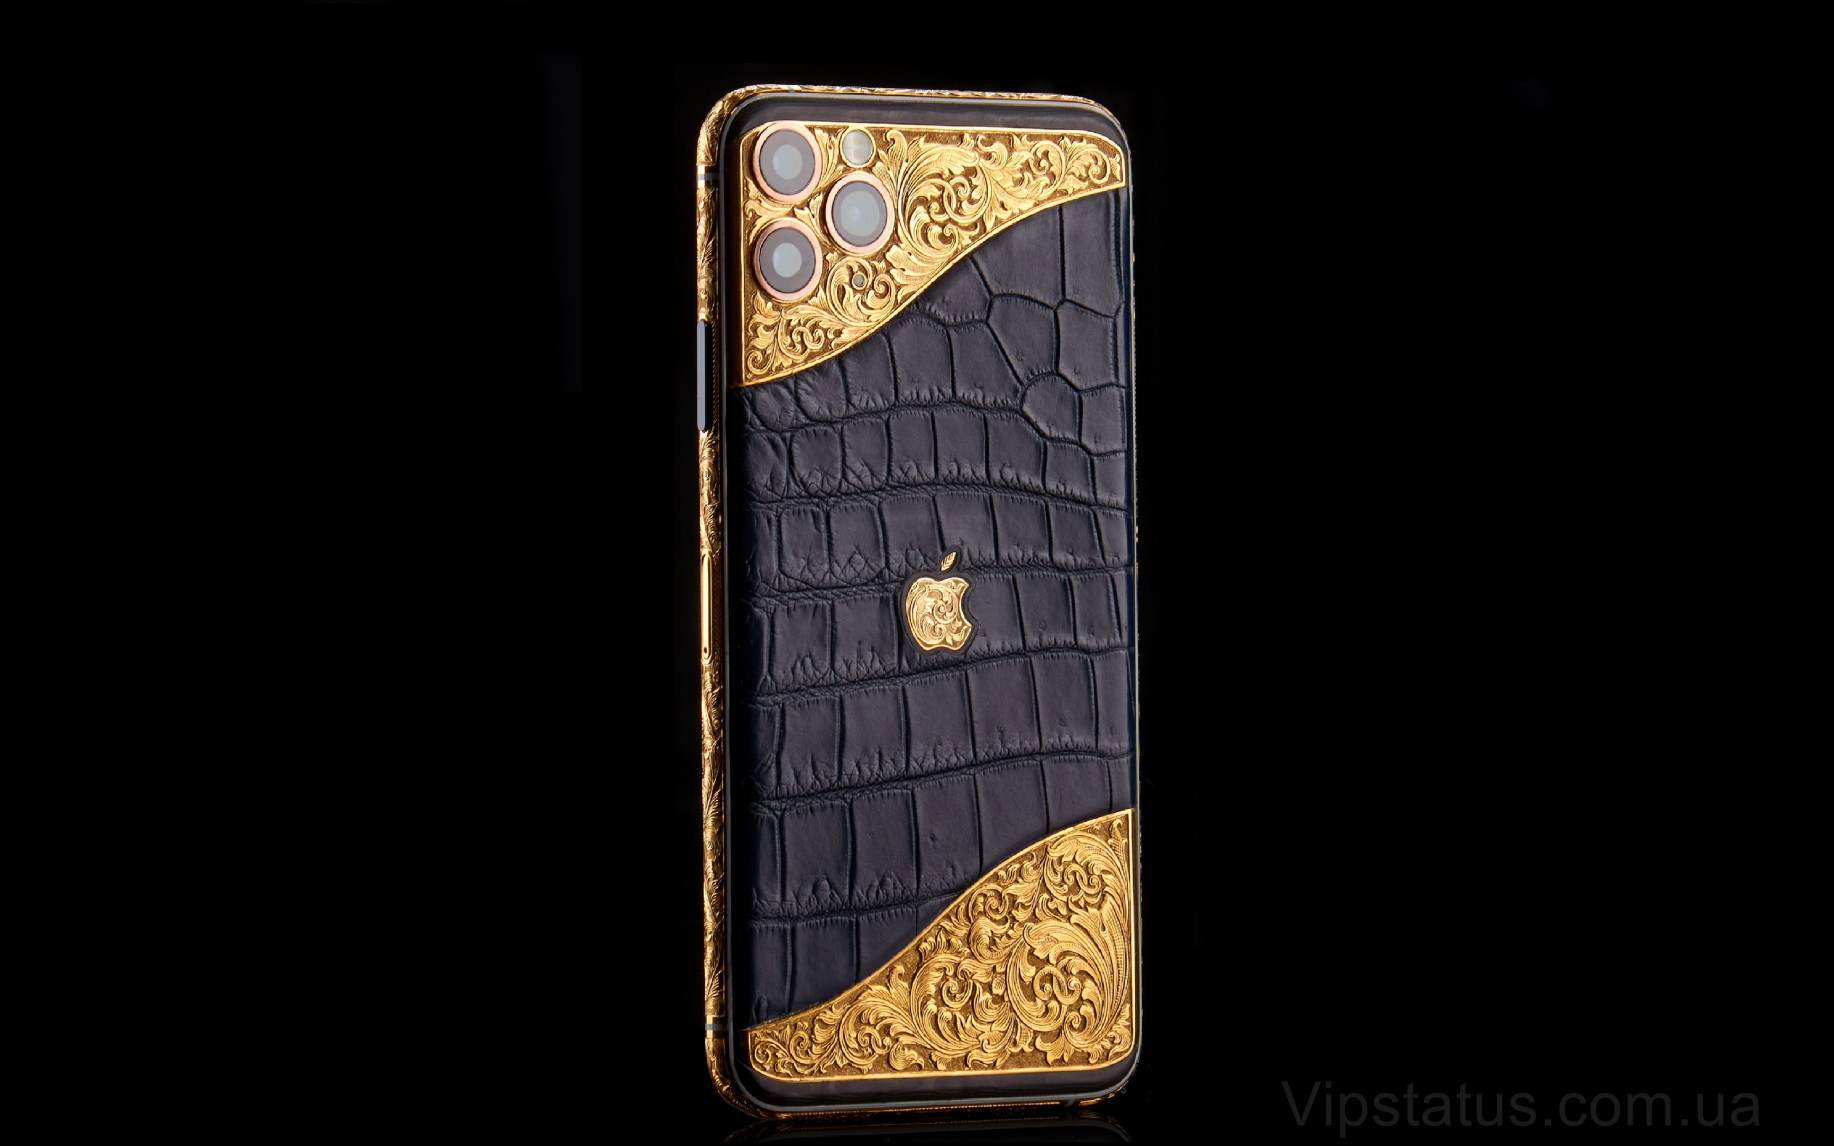 Elite Gold Aristocrate IPHONE 11 PRO 512 GB Gold Aristocrate IPHONE 11 PRO 512 GB image 1